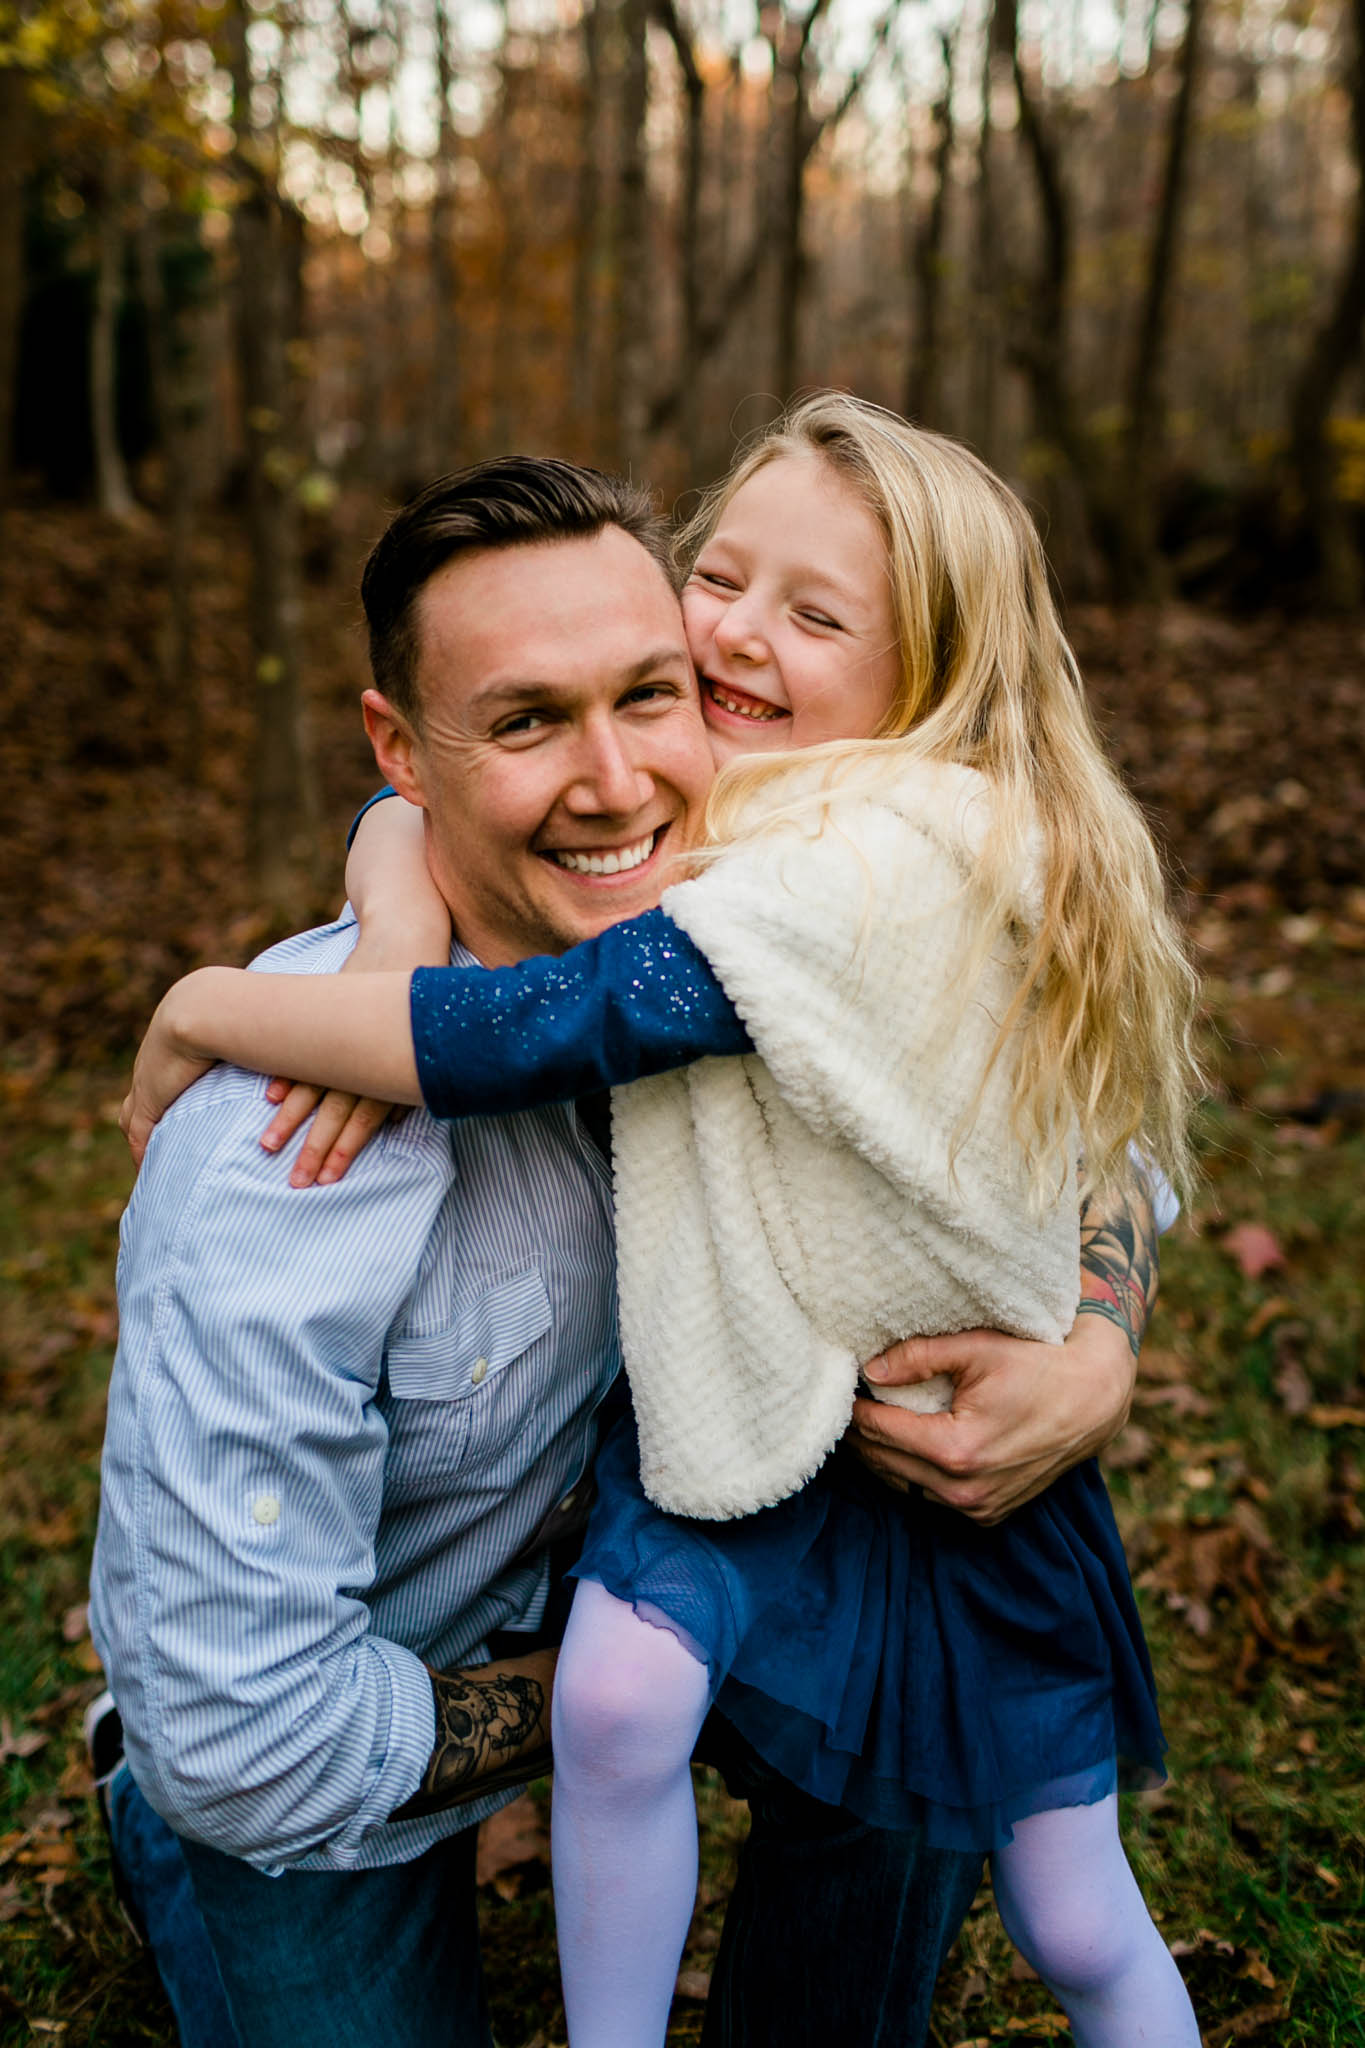 Candid fall photo of father and daughter   Durham Family Photographer   By G. Lin Photography